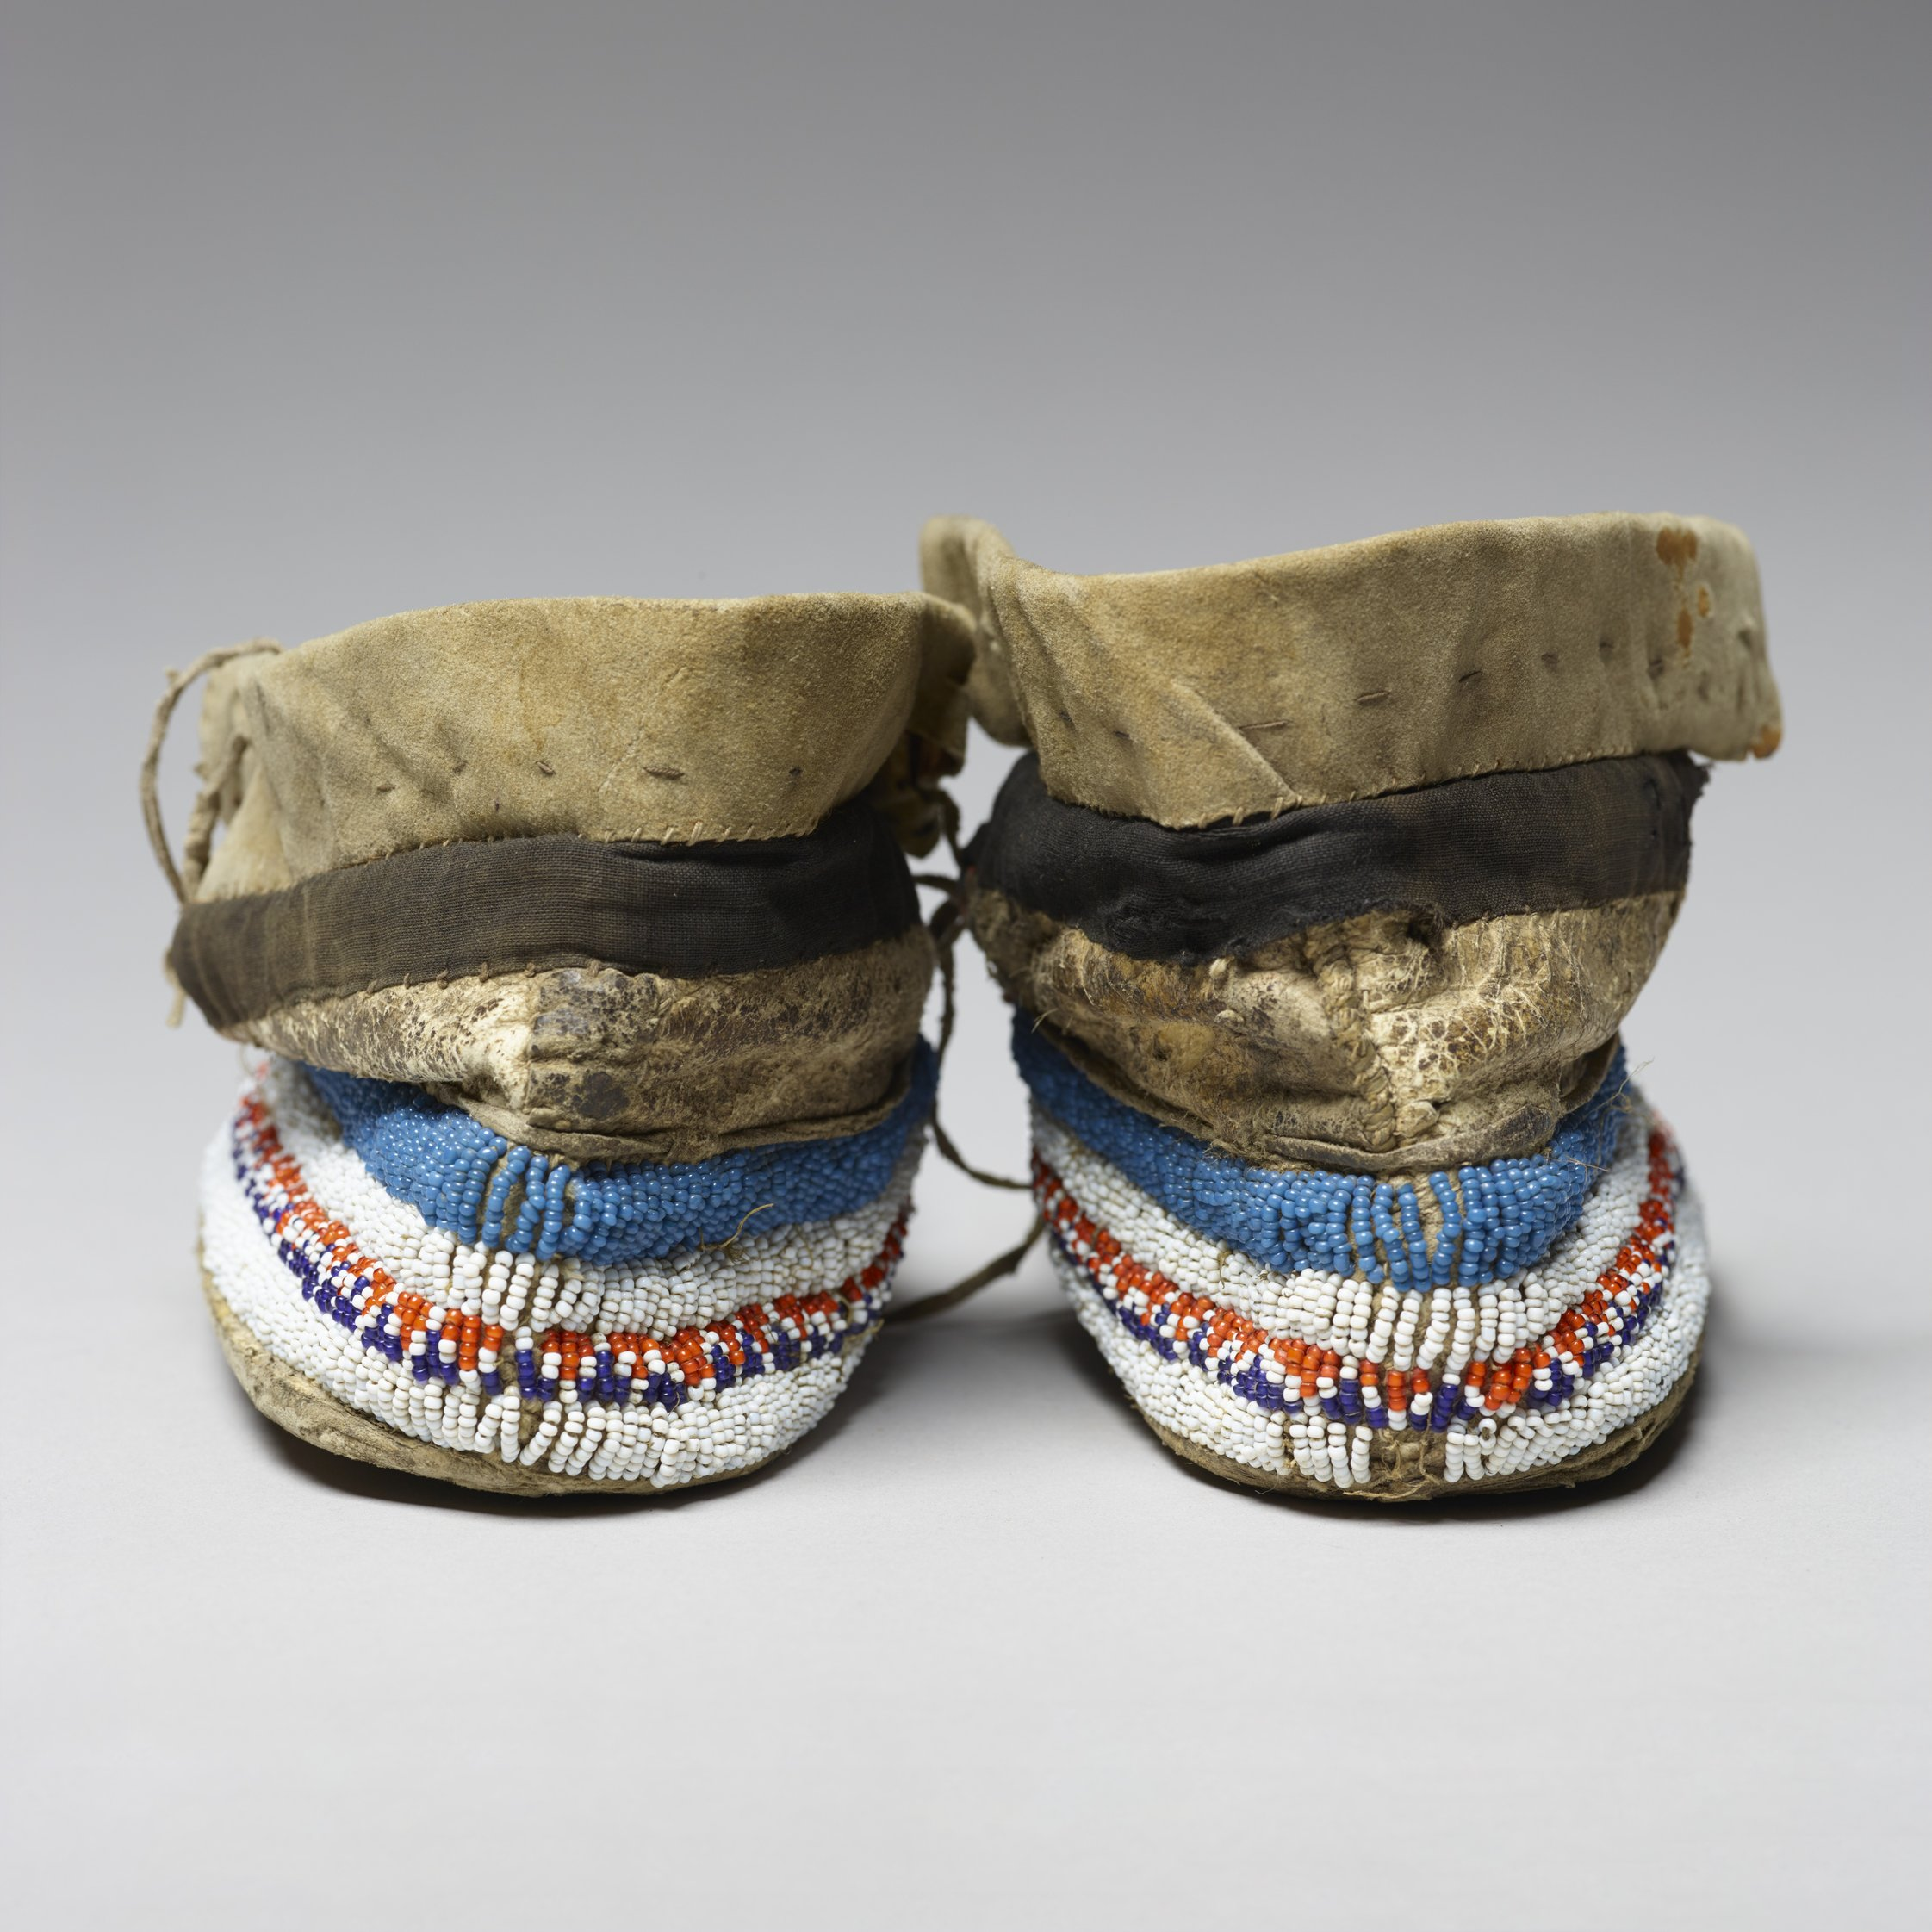 Beaded Moccasins - 4